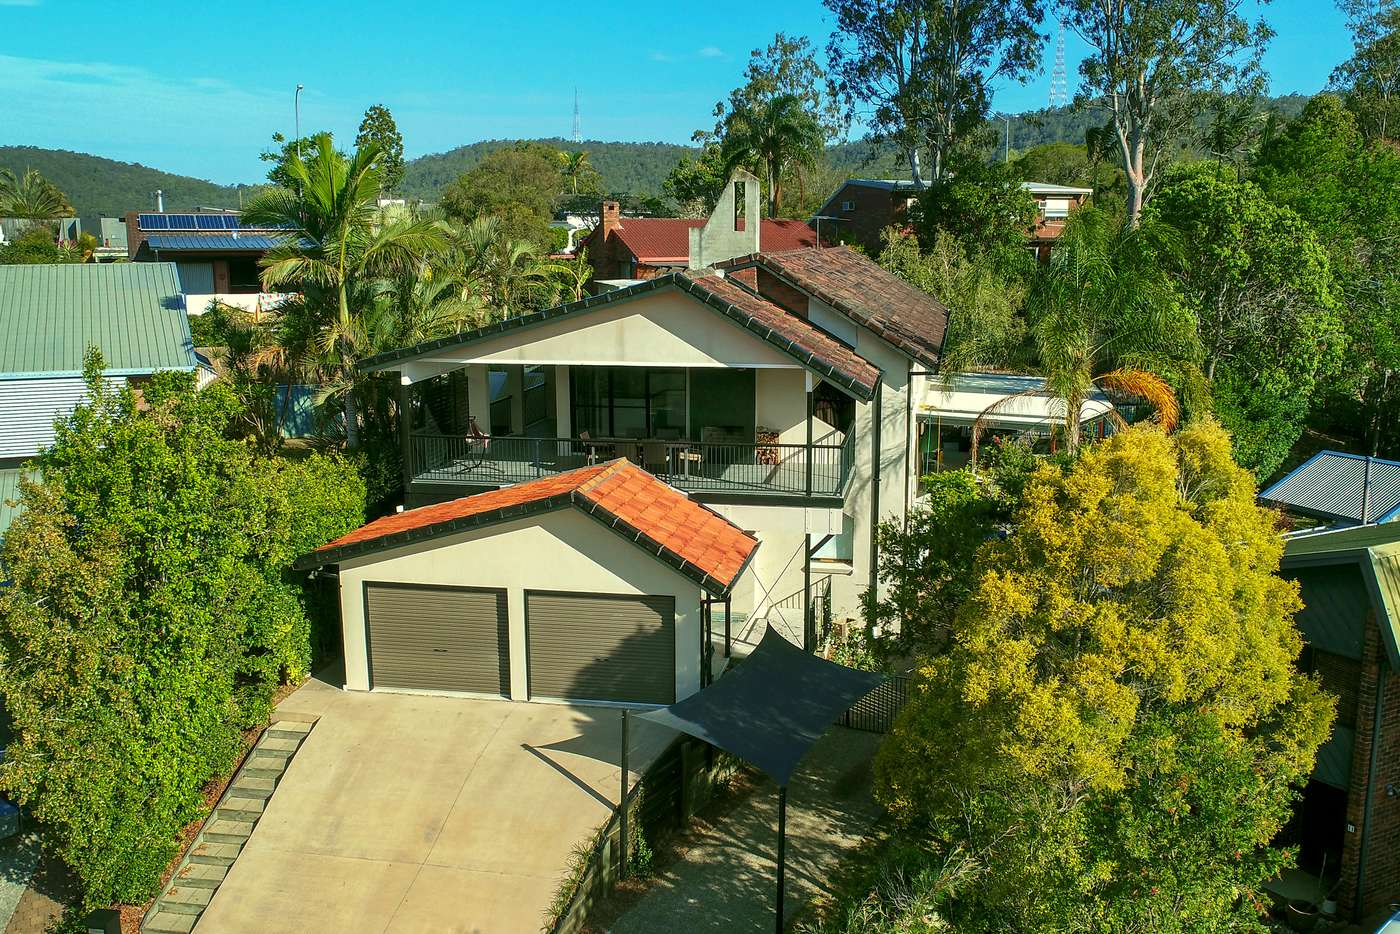 Main view of Homely house listing, 15 Maestra Street, The Gap QLD 4061